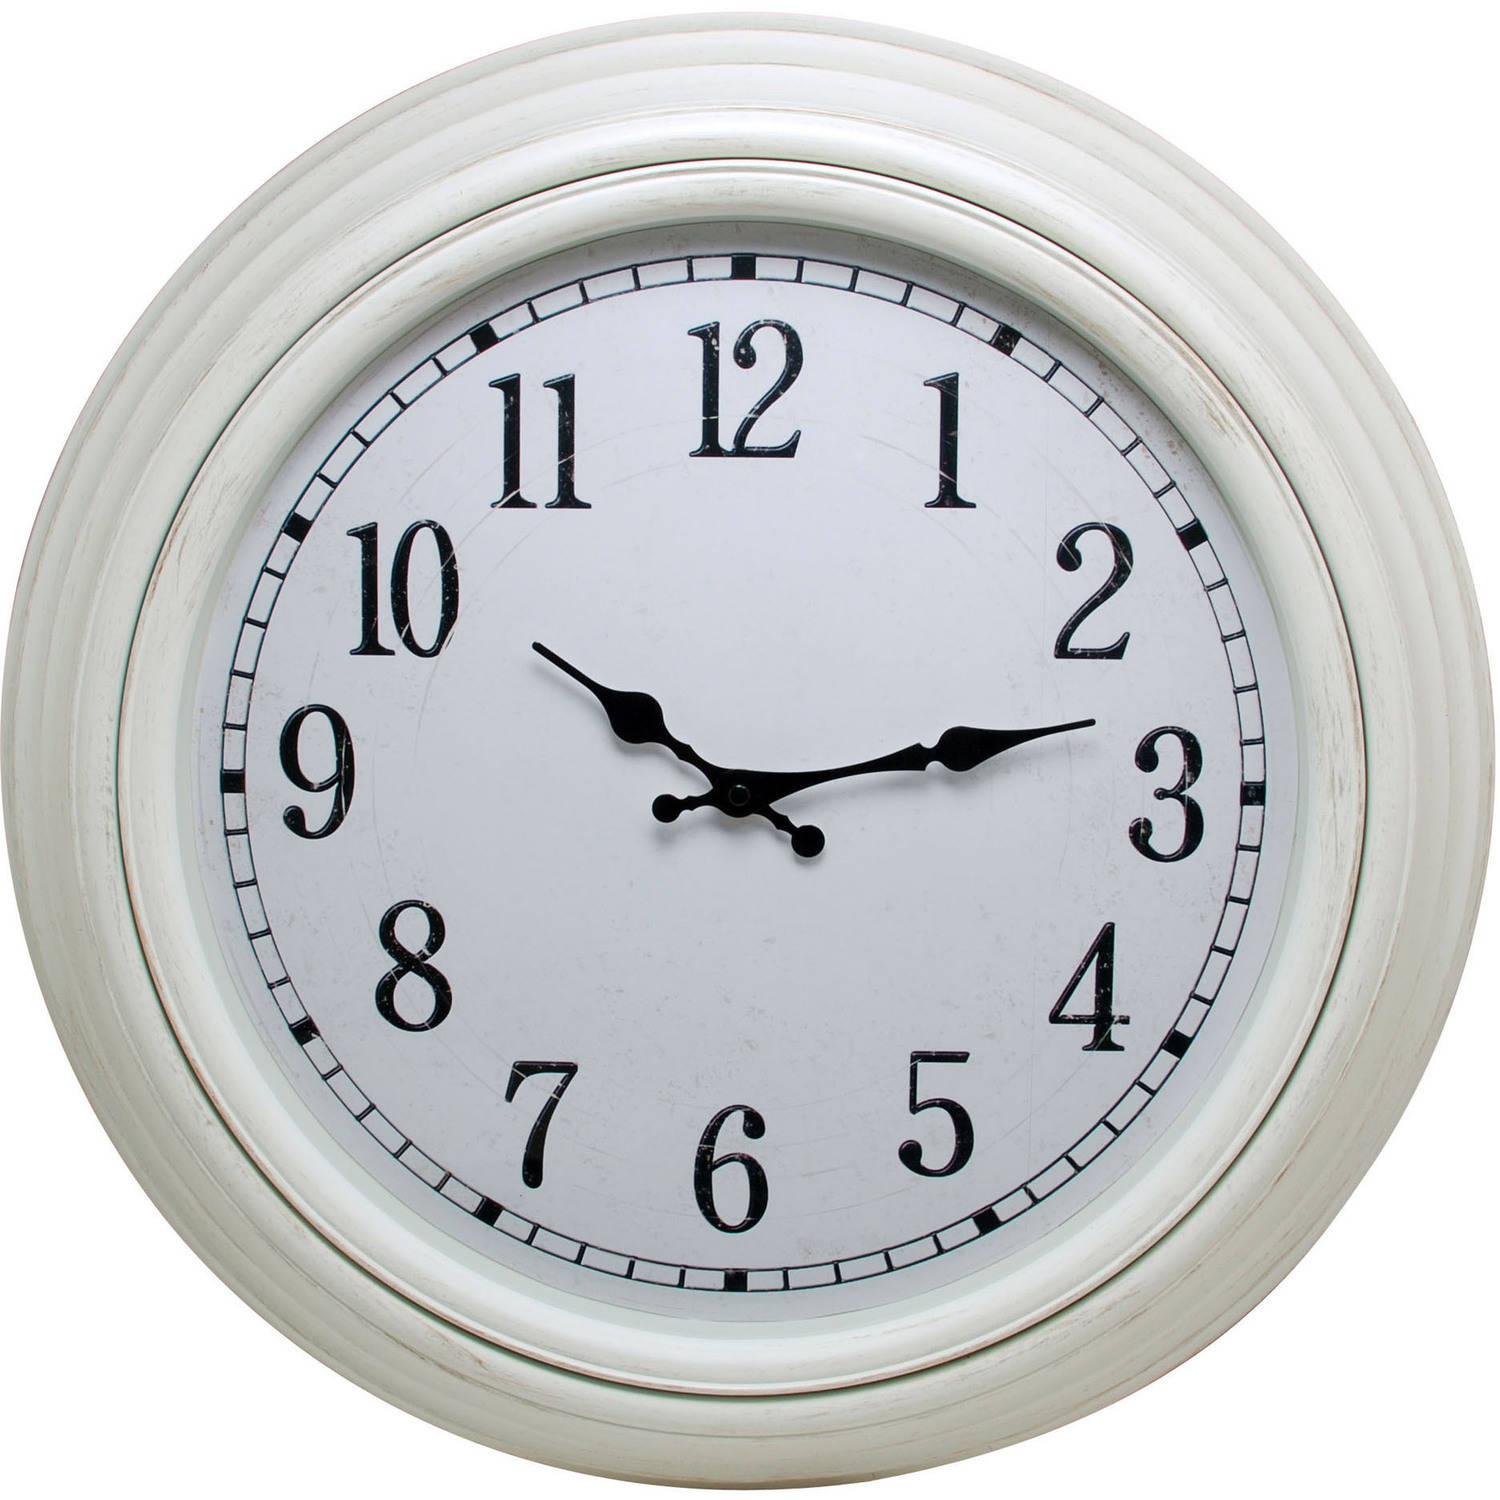 "Kiera Grace Emerson 20"" Round Wall Clock with Distressed White Finish and Weathered Dial"